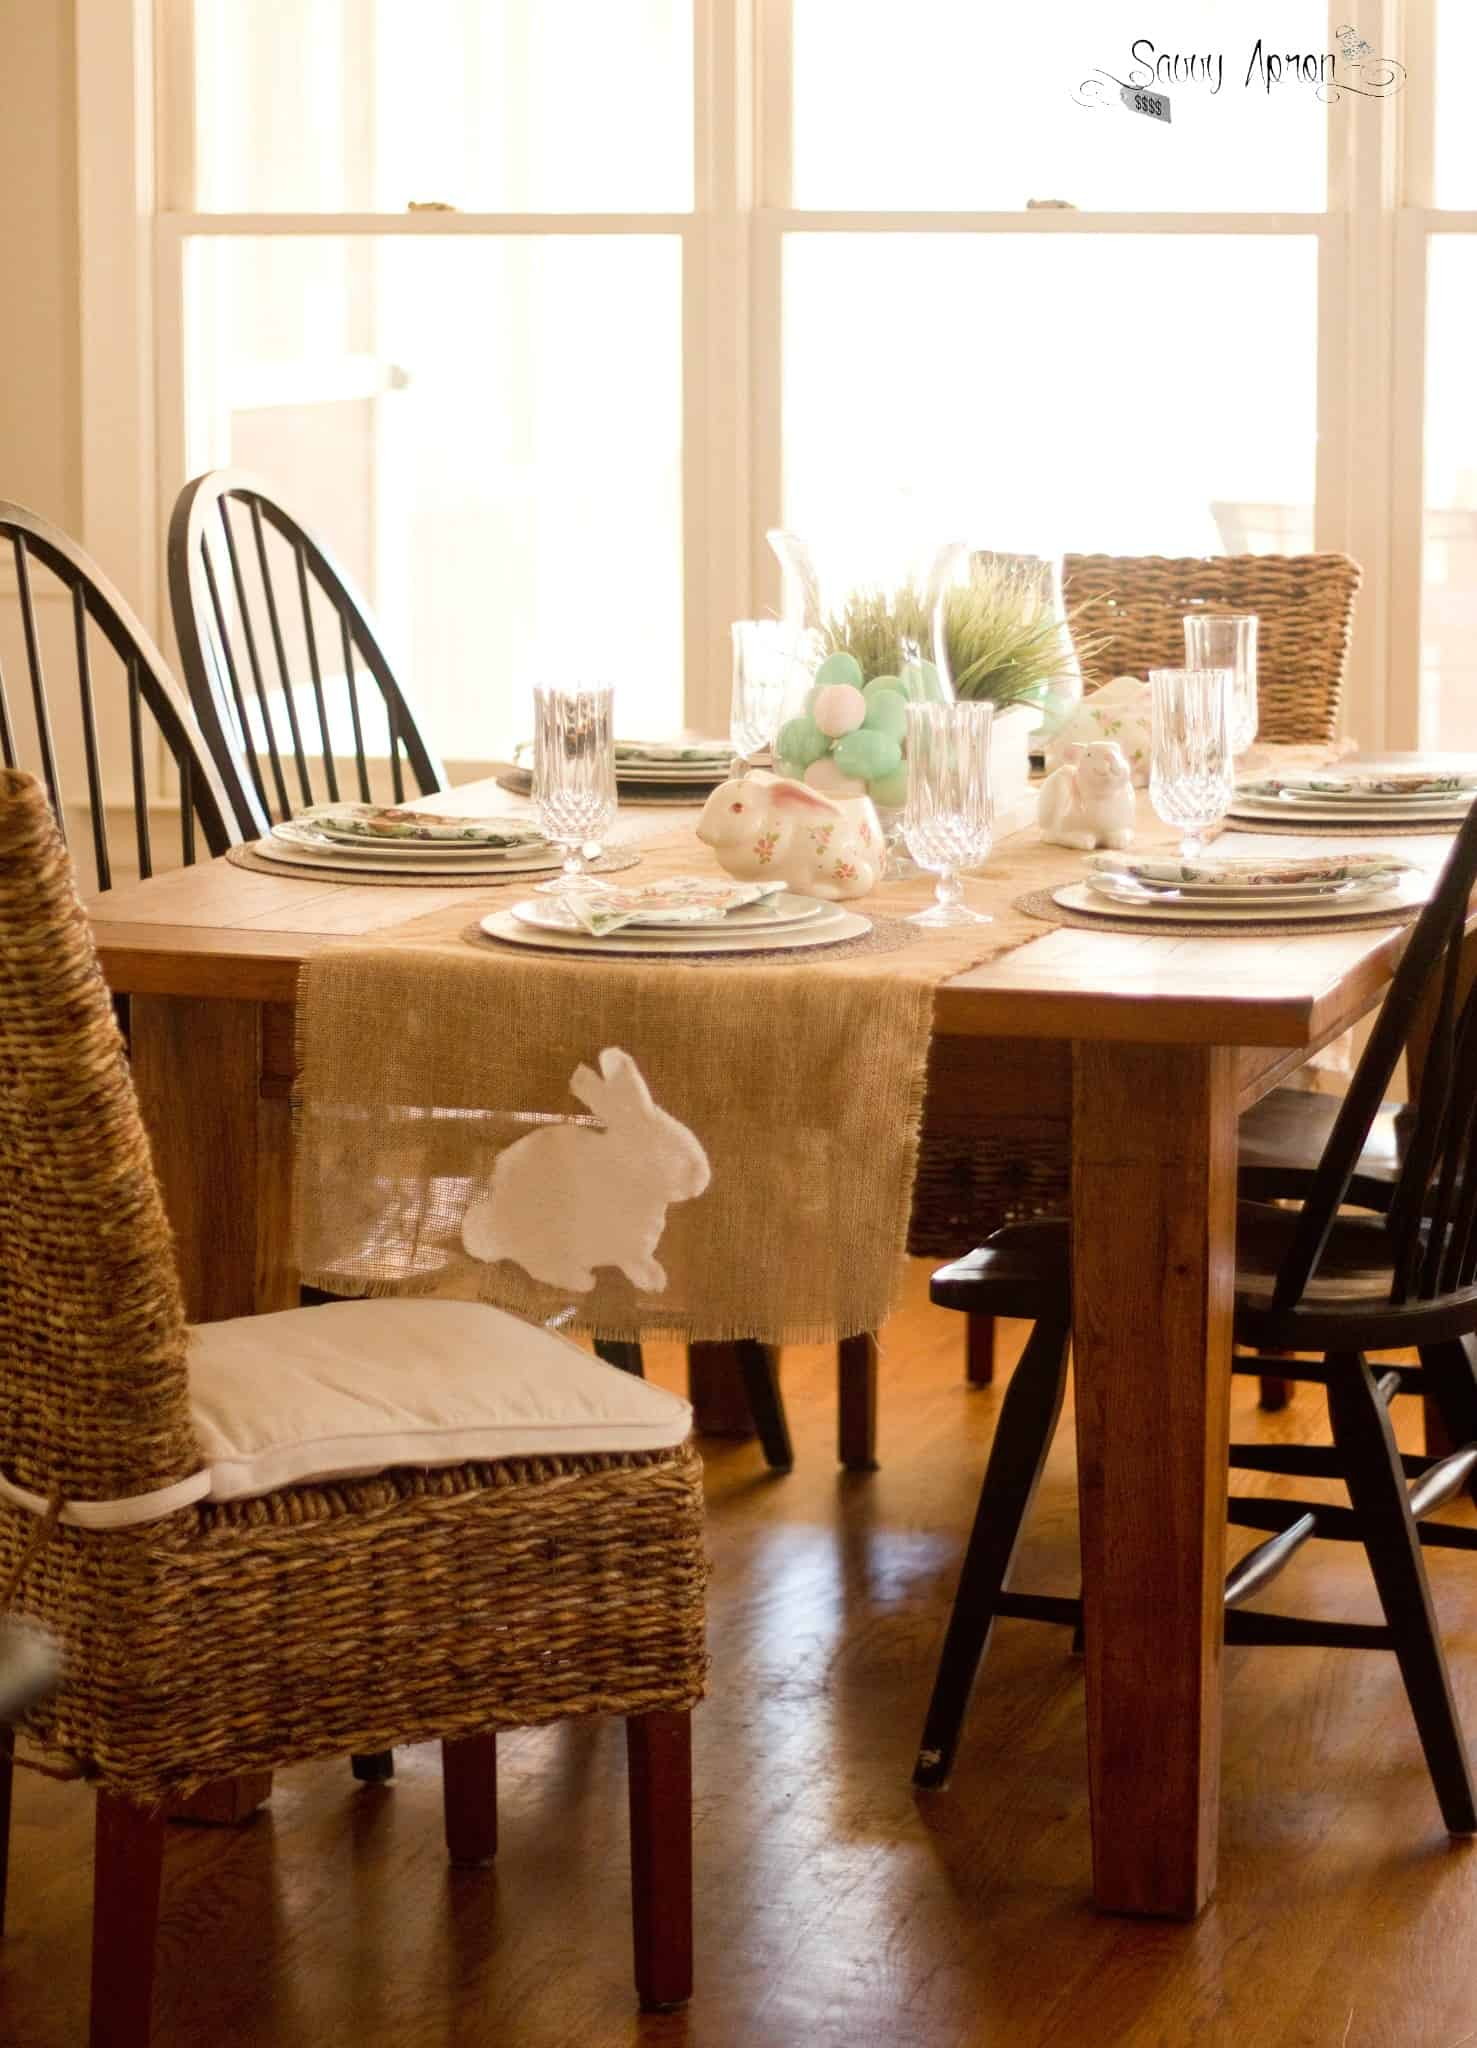 bunny table runner and thrifted table setting | savvy apron